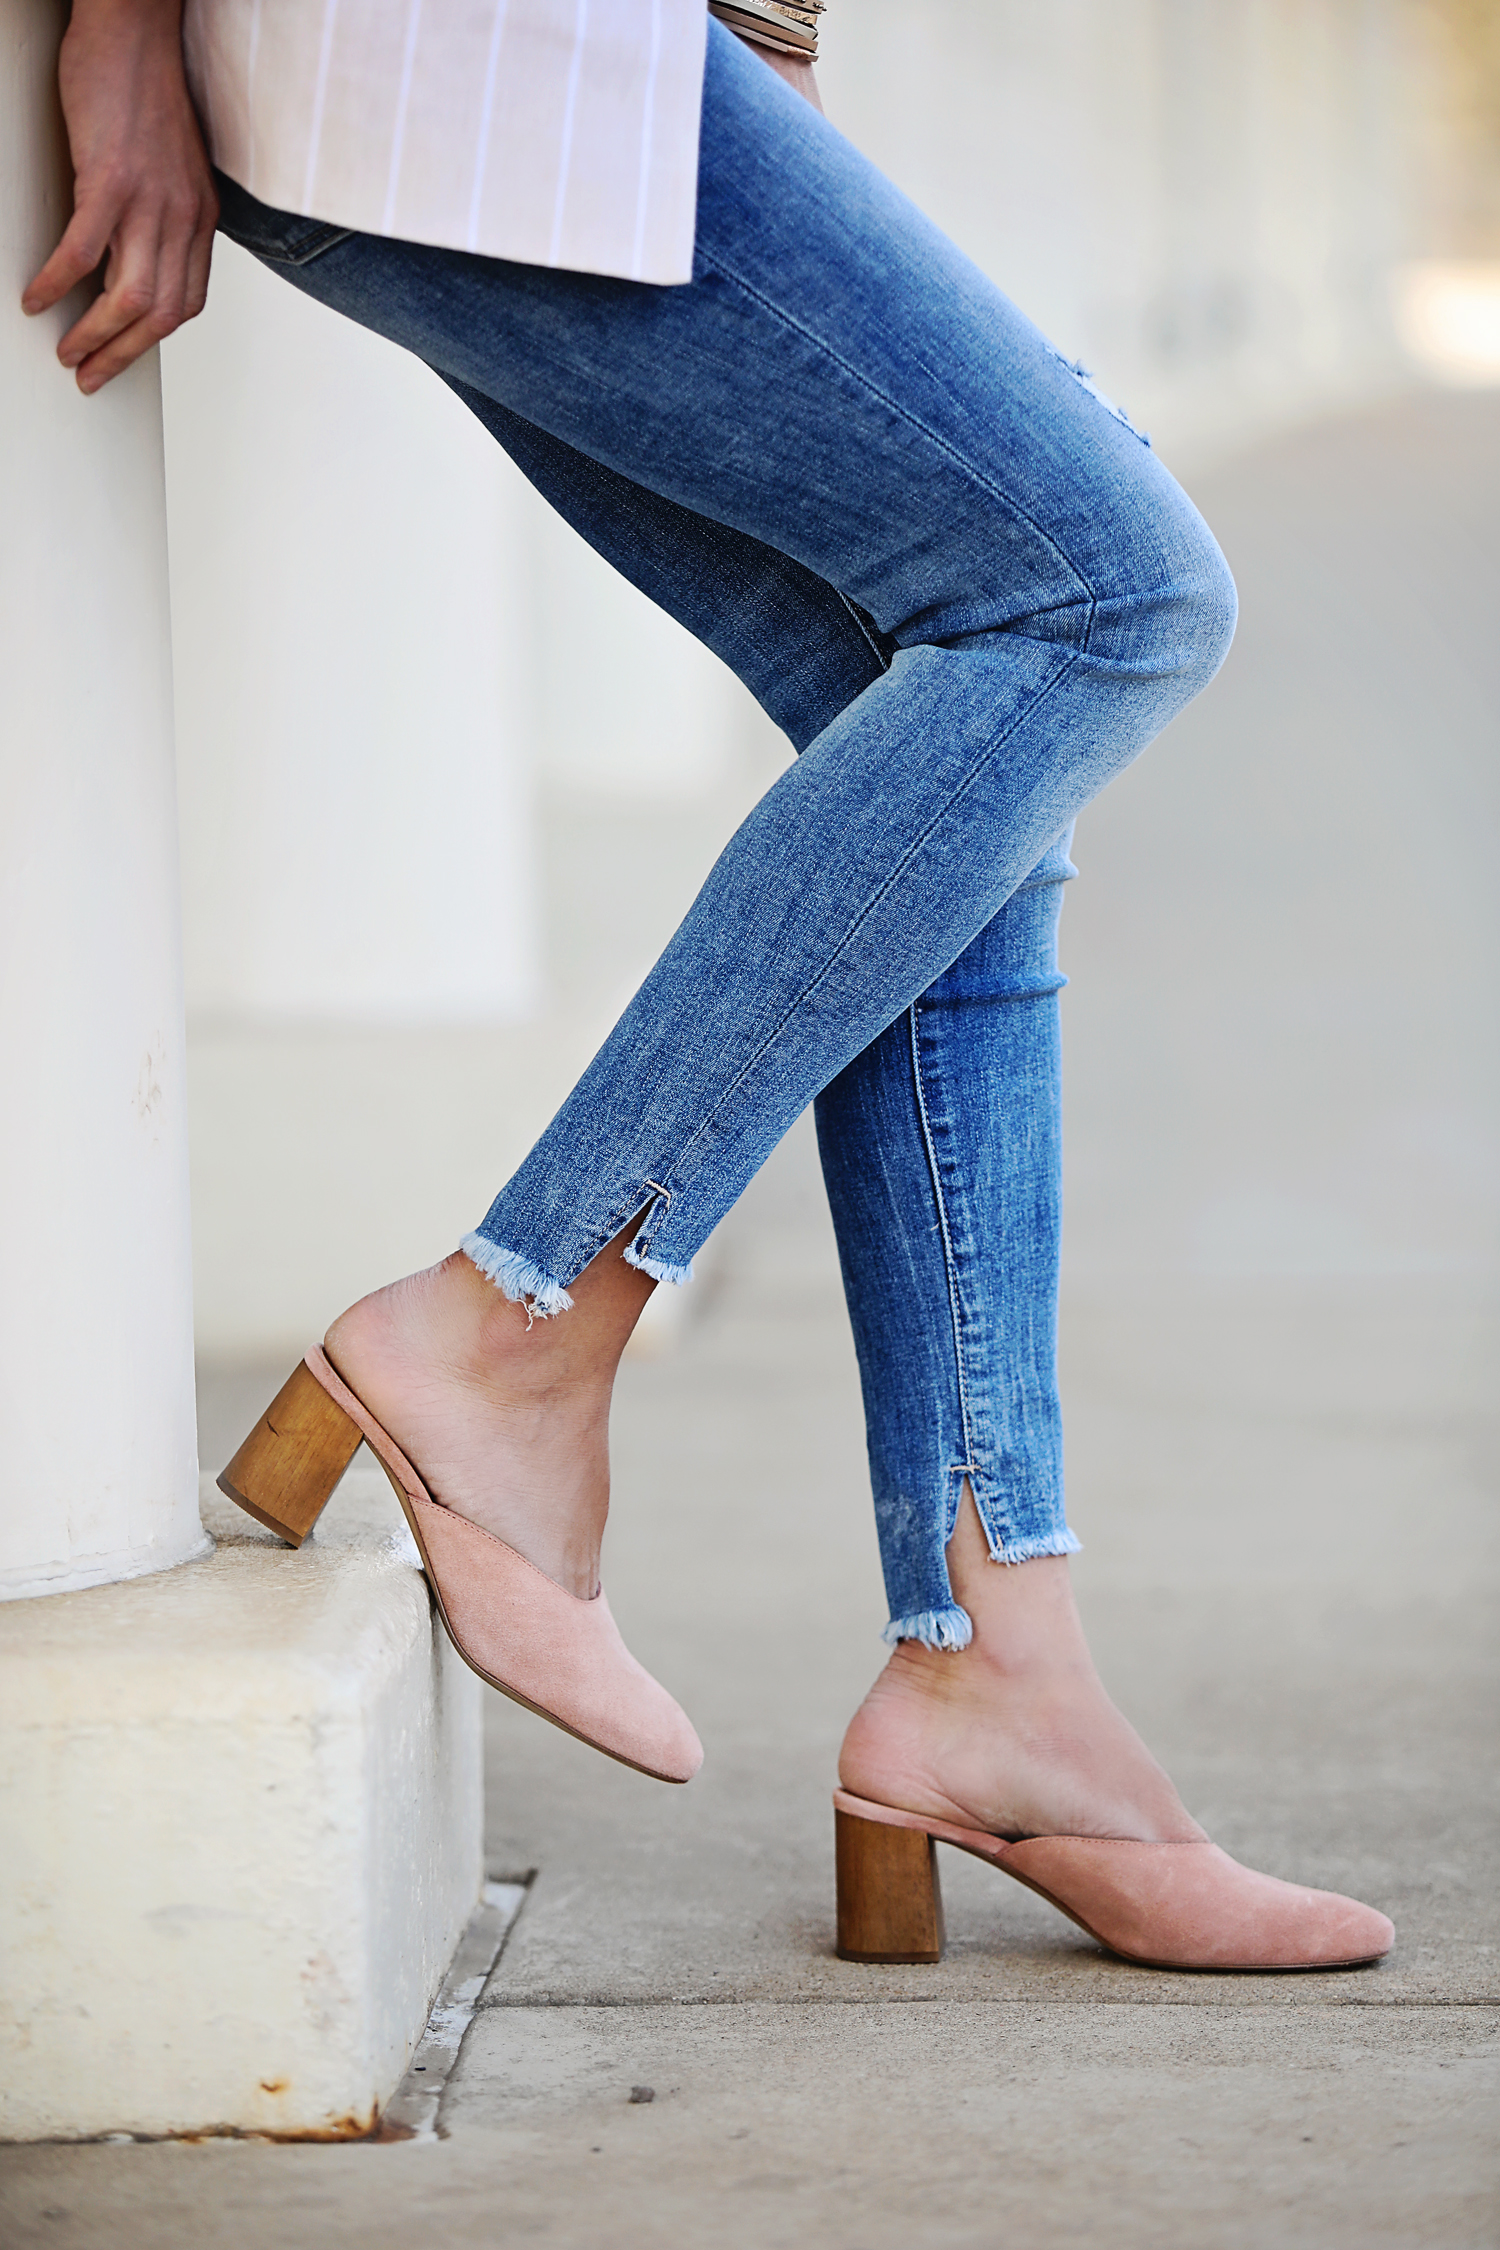 The Motherchic wearing Madewell mules